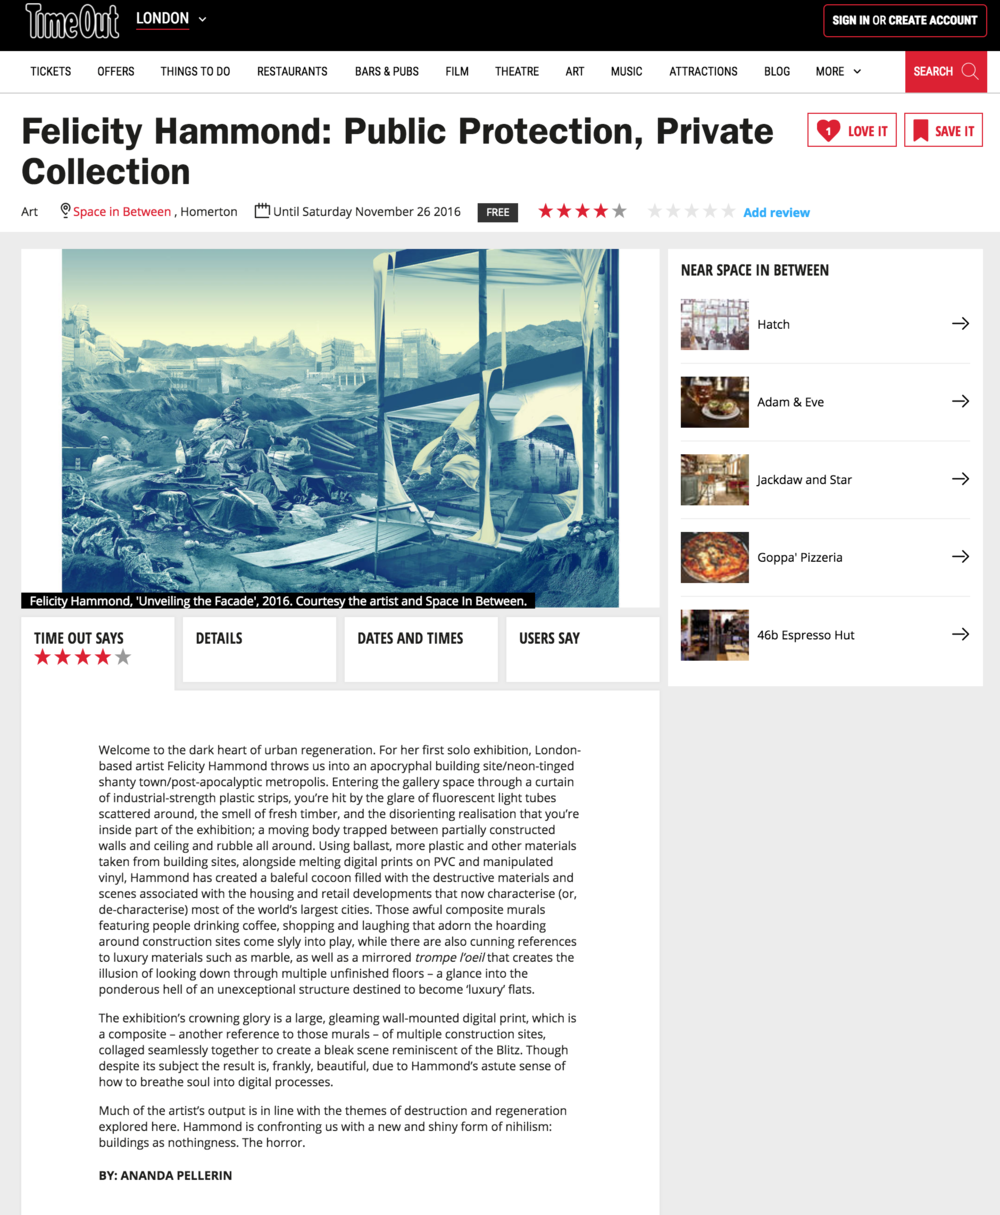 http://www.timeout.com/london/art/felicity-hammond-public-protection-private-collection